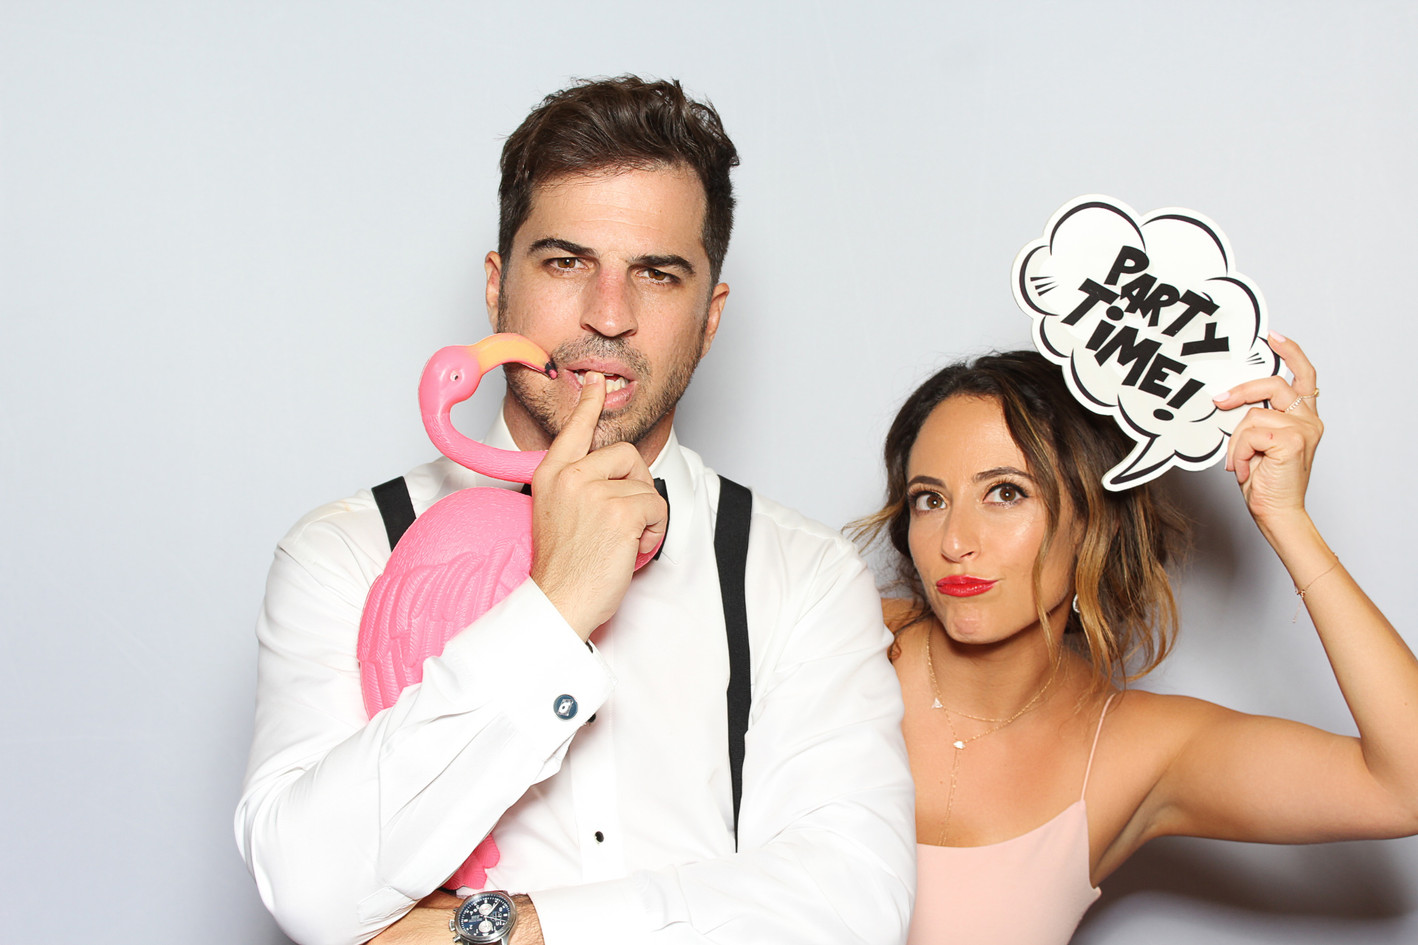 The Booth & Bus Co. - White Stretch Backdrop Photo Booth